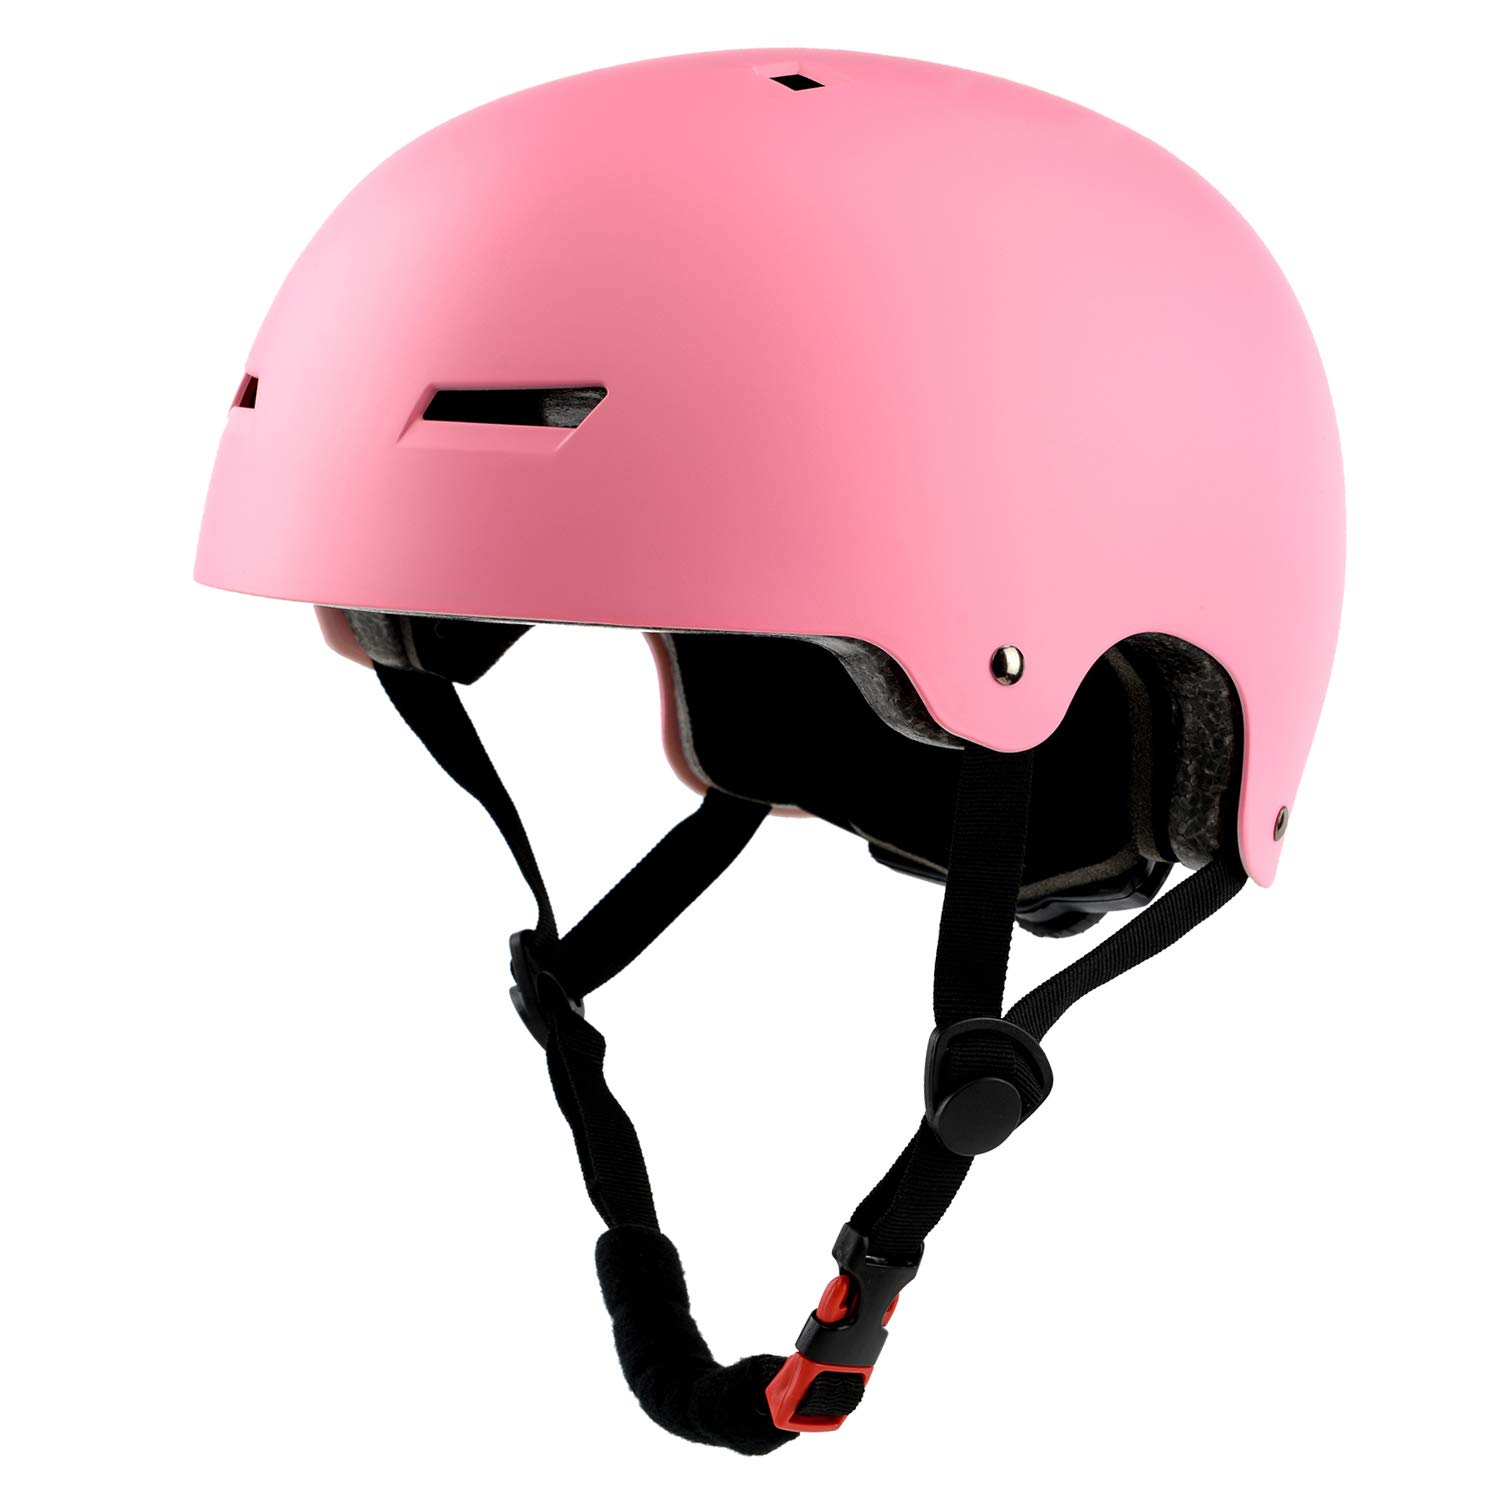 Ouwoer Kids/Adult Skateboard & Bike Helmet, CPSC Certified, Adjustable and Multi-Sport, from Toddler to Adult (Pink) by Ouwoer